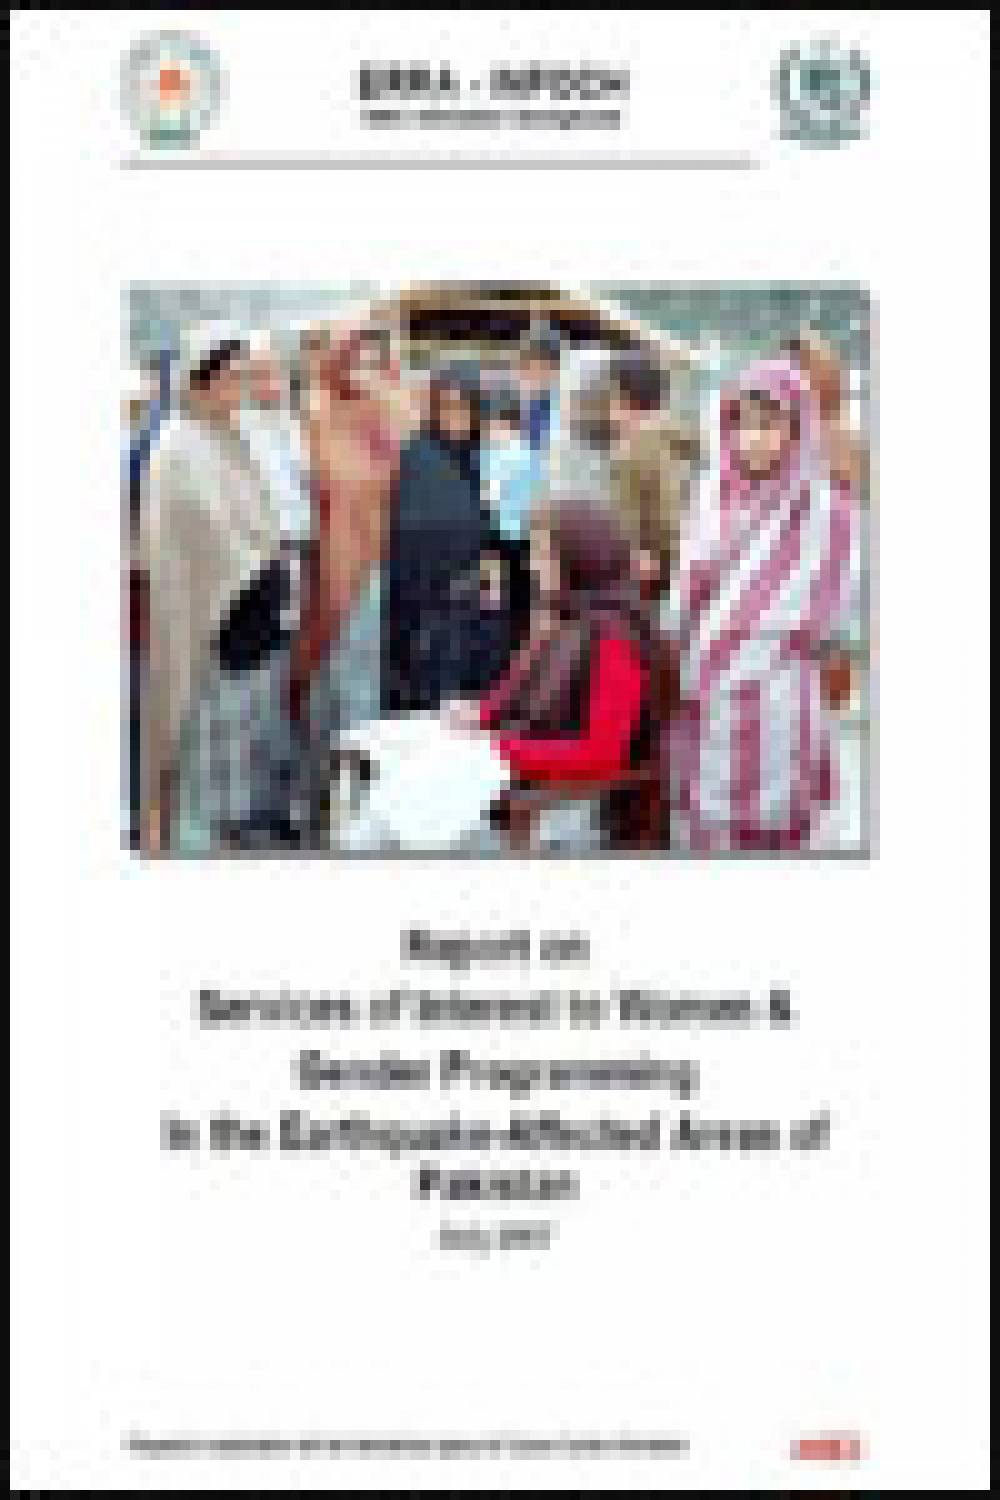 Report on Services of Interest to Women & Gender Programming In the Earthquake-Affected Areas of Pakistan